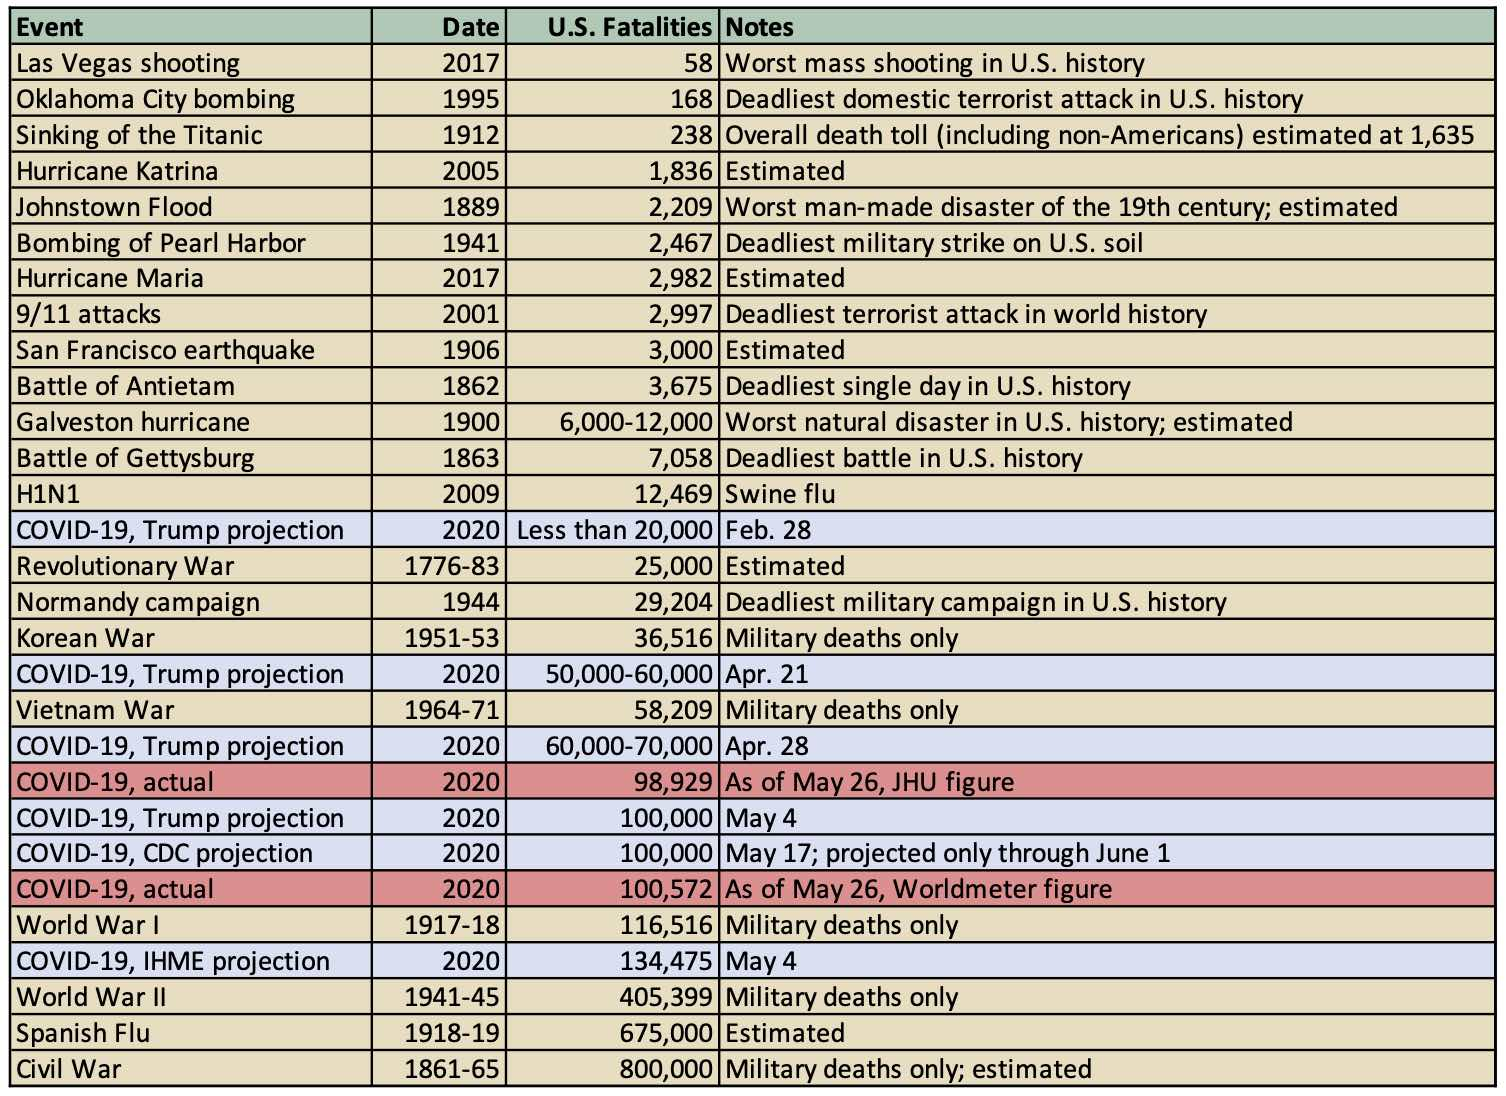 Event, Date, U.S. Fatalities, Notes; Las Vegas shooting, 2017, 58, Worst mass shooting in U.S. history; Oklahoma City bombing, 1995, 168, Deadliest domestic terrorist attack in U.S. history; Sinking of the Titanic, 1912, 238, Overall death toll (including non-Americans) estimated at 1, 635; Hurricane Katrina, 2005, 1, 836, Estimated; Johnstown Flood, 1889, 2, 209, Worst man-made disaster of the 19th century; estimated; Bombing of Pearl Harbor, 1941, 2, 467, Deadliest military strike on U.S. soil; Hurricane Maria, 2017, 2, 982, Estimated; 9/11 attacks, 2001, 2, 997, Deadliest terrorist attack in world history; San Francisco earthquake, 1906, 3,000, Estimated; Battle of Antietam, 1862, 3, 675, Deadliest single day in U.S. history; Galveston hurricane, 1900, 6,000-12,000, Worst natural disaster in U.S. history; estimated; Battle of Gettysburg, 1863, 7, 058, Deadliest battle in U.S. history; H1N1, 2009, 12, 469, Swine flu; COVID-19, Trump projection, 2020, Less than 20,000, Feb. 28; Revolutionary War, 1776-83, 25,000, Estimated; Normandy campaign, 1944, 29, 204, Deadliest military campaign in U.S. history; Korean War, 1951-53, 36, 516, Military deaths only; COVID-19, Trump projection, 2020, 50,000-60,000, Apr. 21; Vietnam War, 1964-71, 58, 209, Military deaths only; COVID-19, Trump projection, 2020, 60,000-70,000, Apr. 28; COVID-19, actual, 2020, 98, 929, As of May 26, JHU figure; COVID-19, Trump projection, 2020, 100,000, May 4; COVID-19, CDC projection, 2020, 100,000, May 17; projected only through June 1; COVID-19, actual, 2020, 100, 572, As of May 26, Worldmeter figure; World War I, 1917-18, 116, 516, Military deaths only; COVID-19, IHME projection, 2020, 134, 475, May 4; World War II, 1941-45, 405, 399, Military deaths only; Spanish Flu, 1918-19, 675,000, Estimated; Civil War, 1861-65, 800,000, Military deaths only; estimated